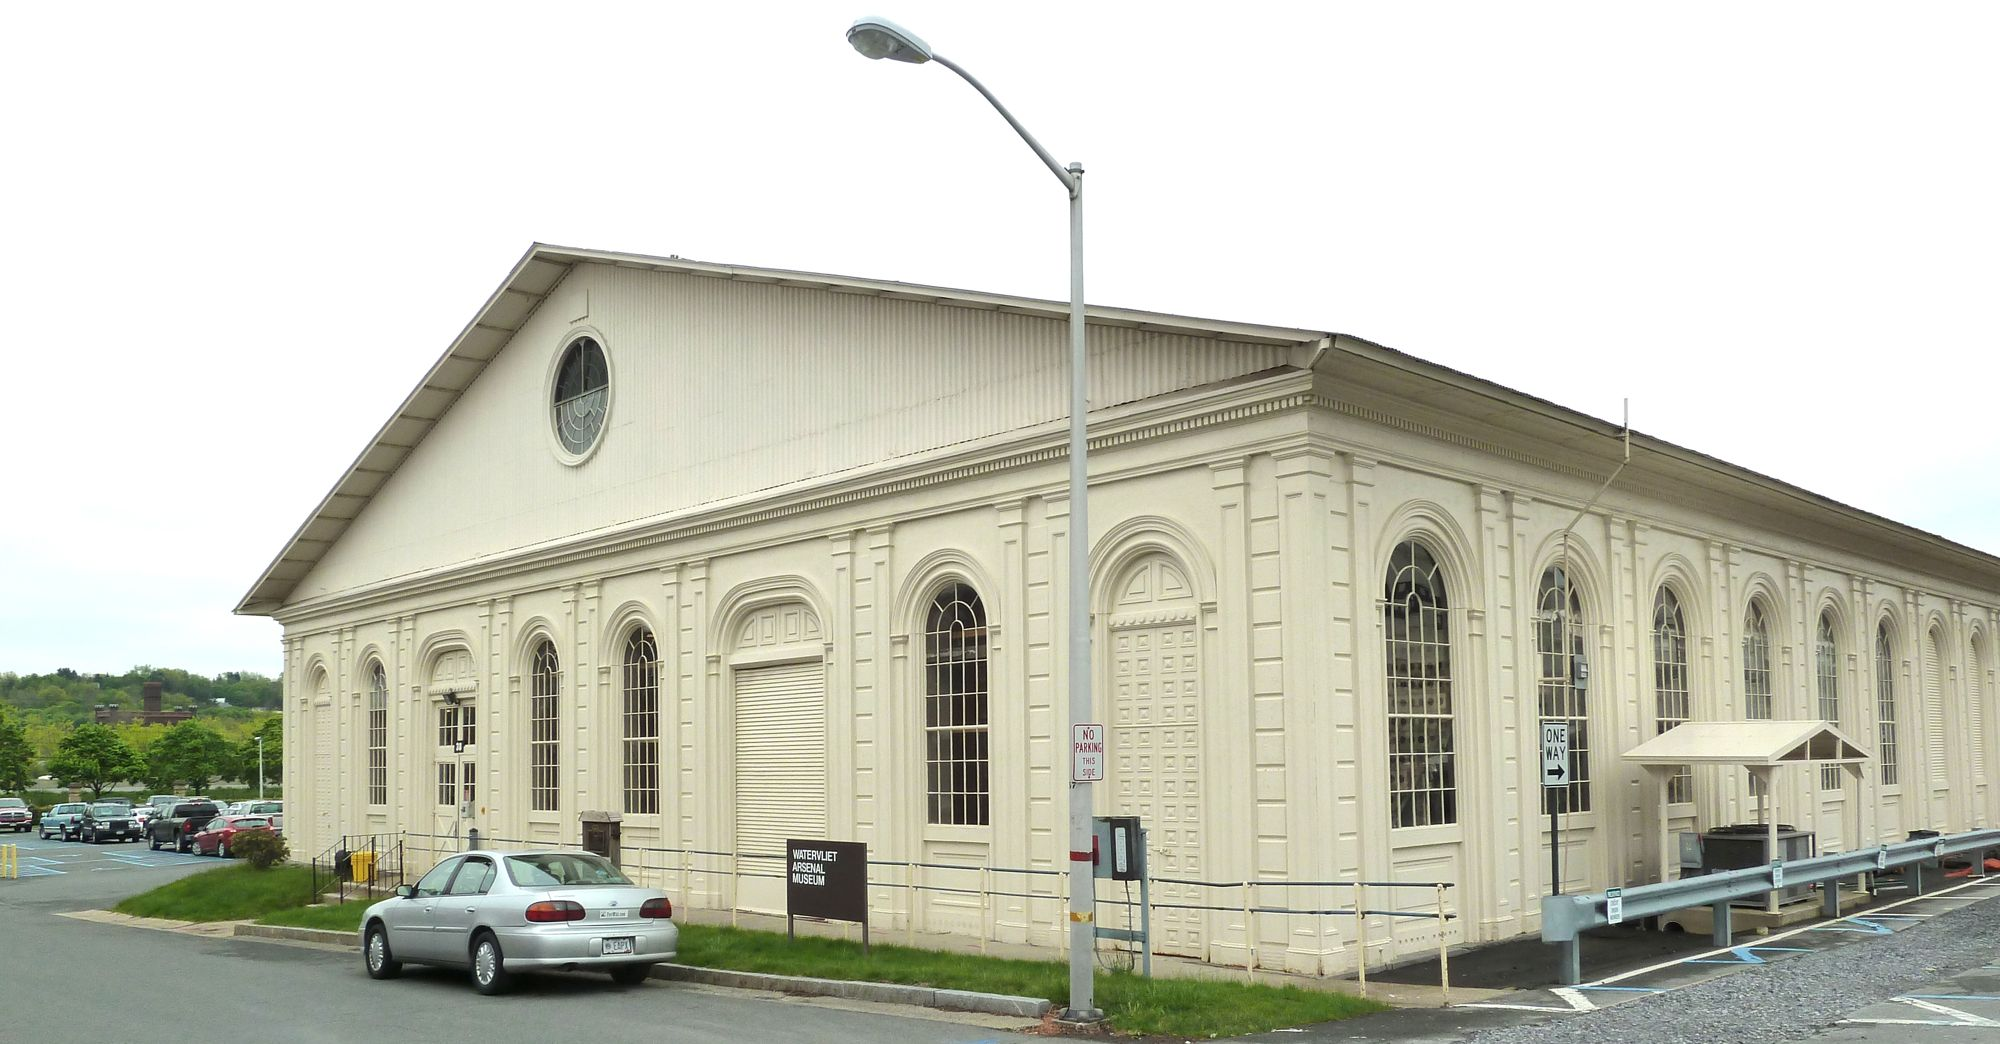 This is the Cast-Iron Building, built in 1859, that once housed the arsenal's museum.  It closed its doors in 2013.